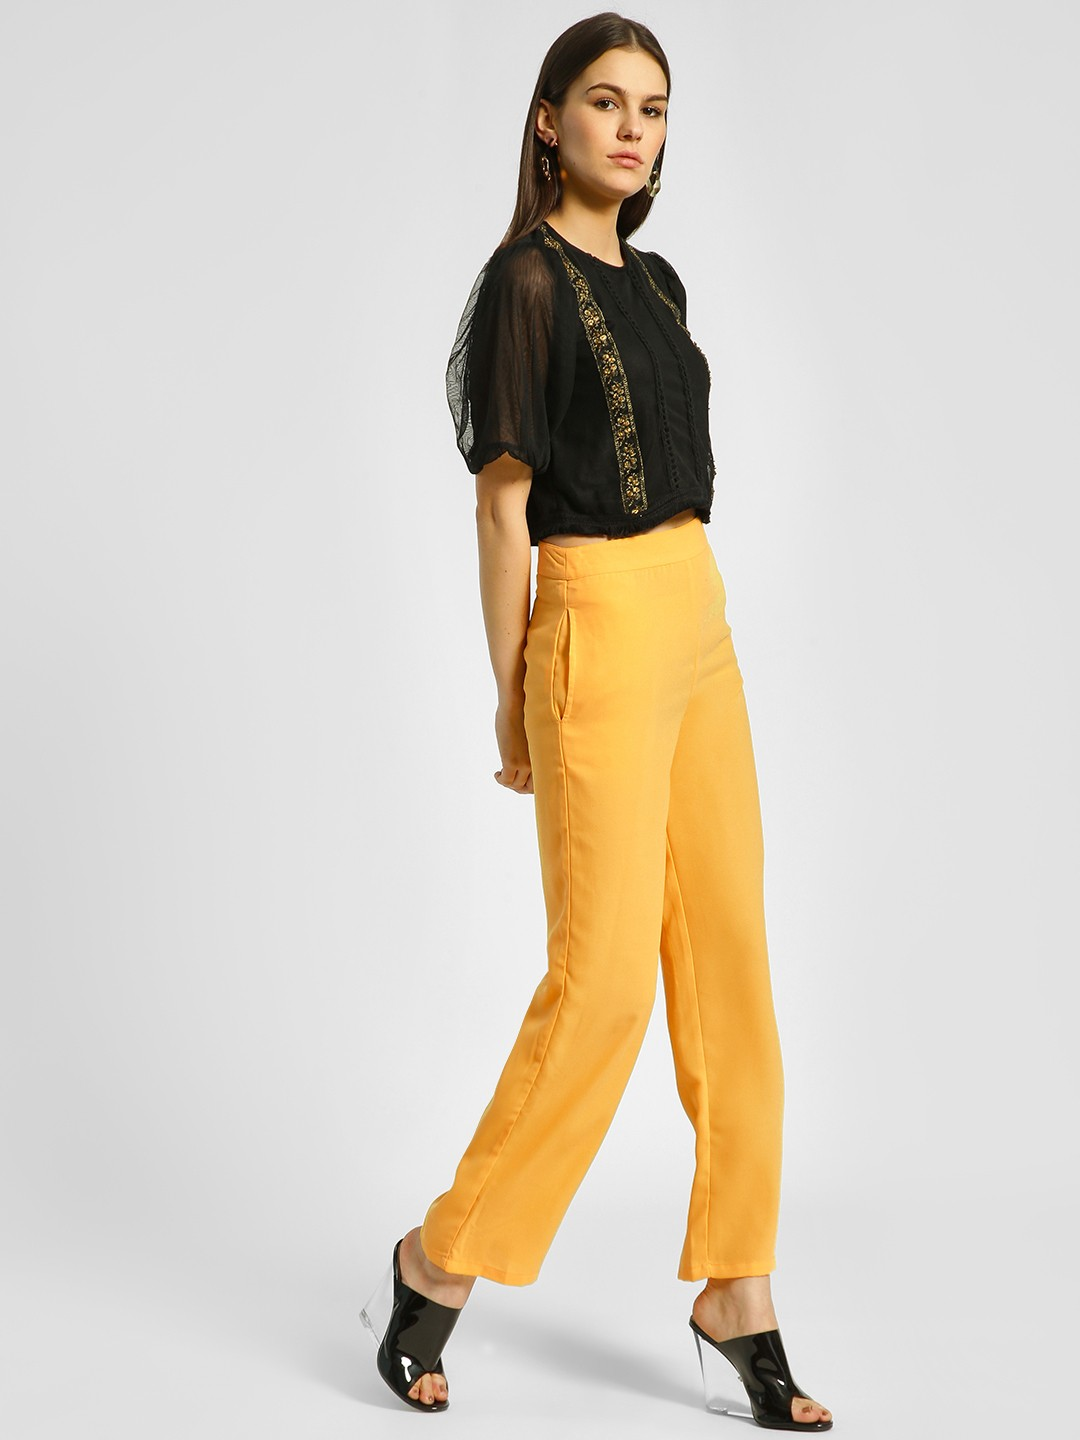 Ri-Dress Yellow Basic High Waist Trousers 1